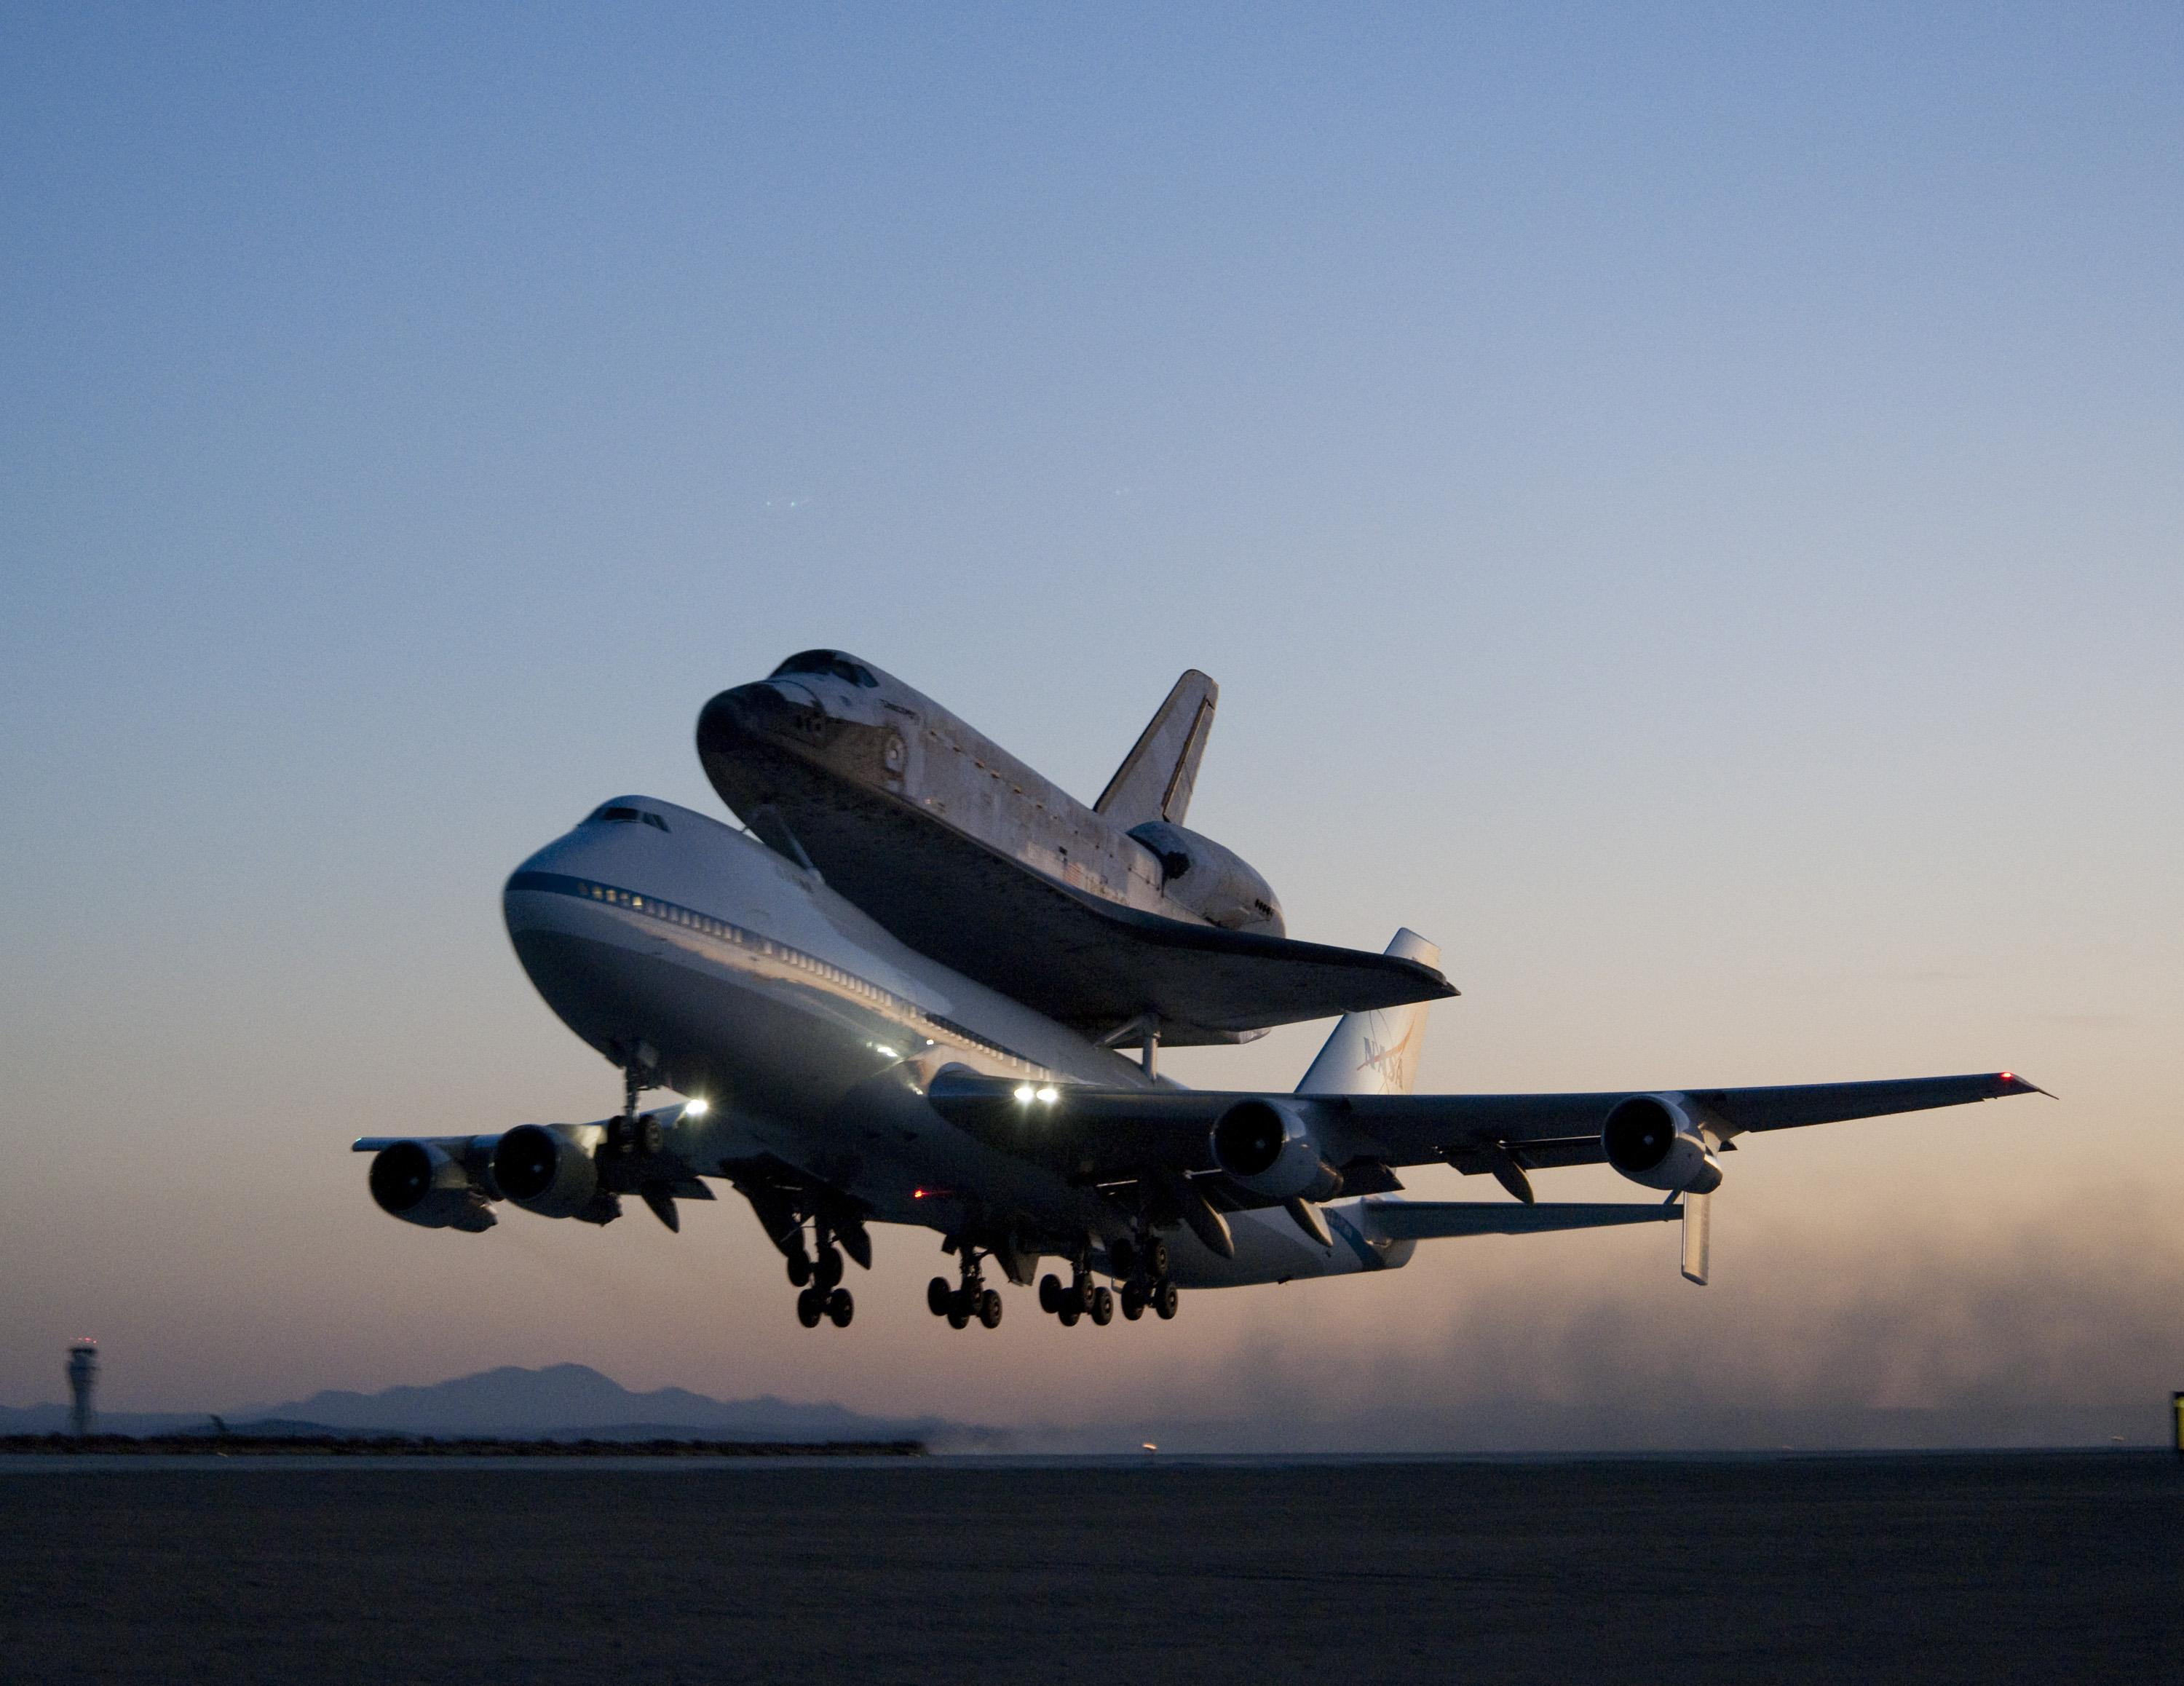 real space shuttle in milwuakee - photo #14